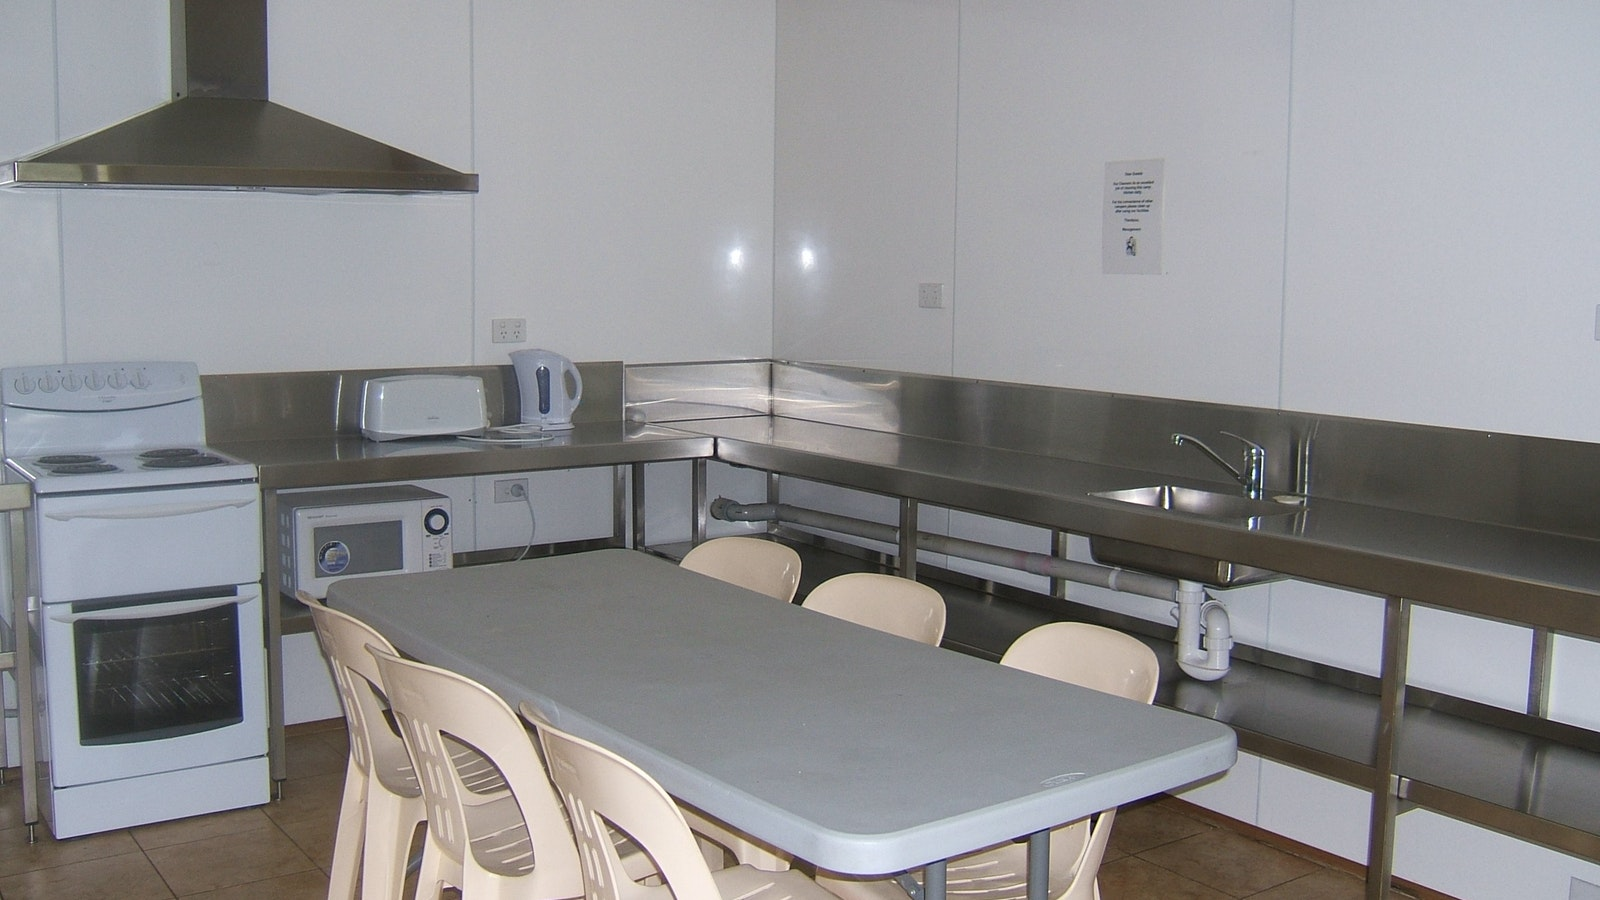 camp kitchen Melbourne BIG4 caravan park